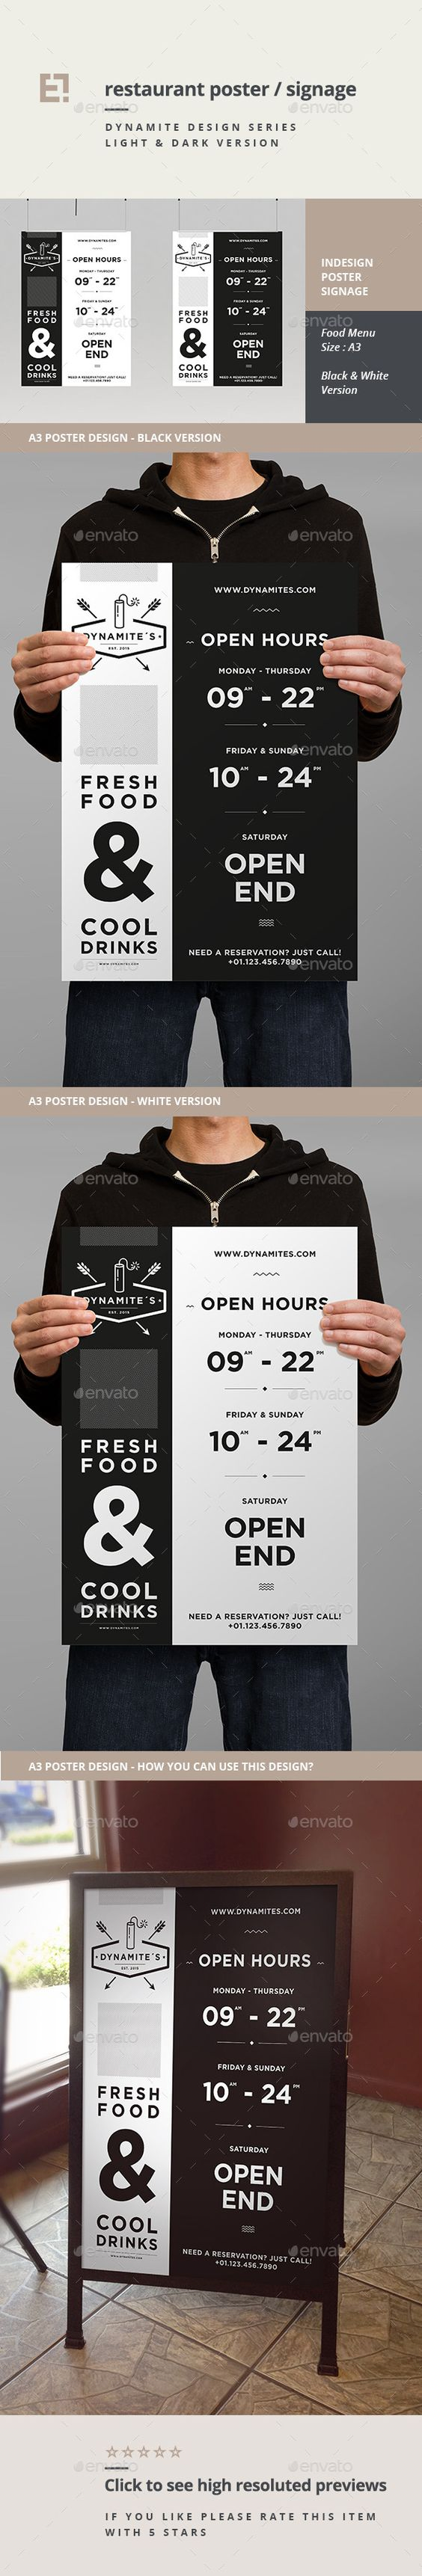 Poster design in indesign - Restaurant Poster 11181480 Indesign Indd Print Dimensions Mb Sale Page More Info And Preview Template Minimal And Professional Poster Design Templates